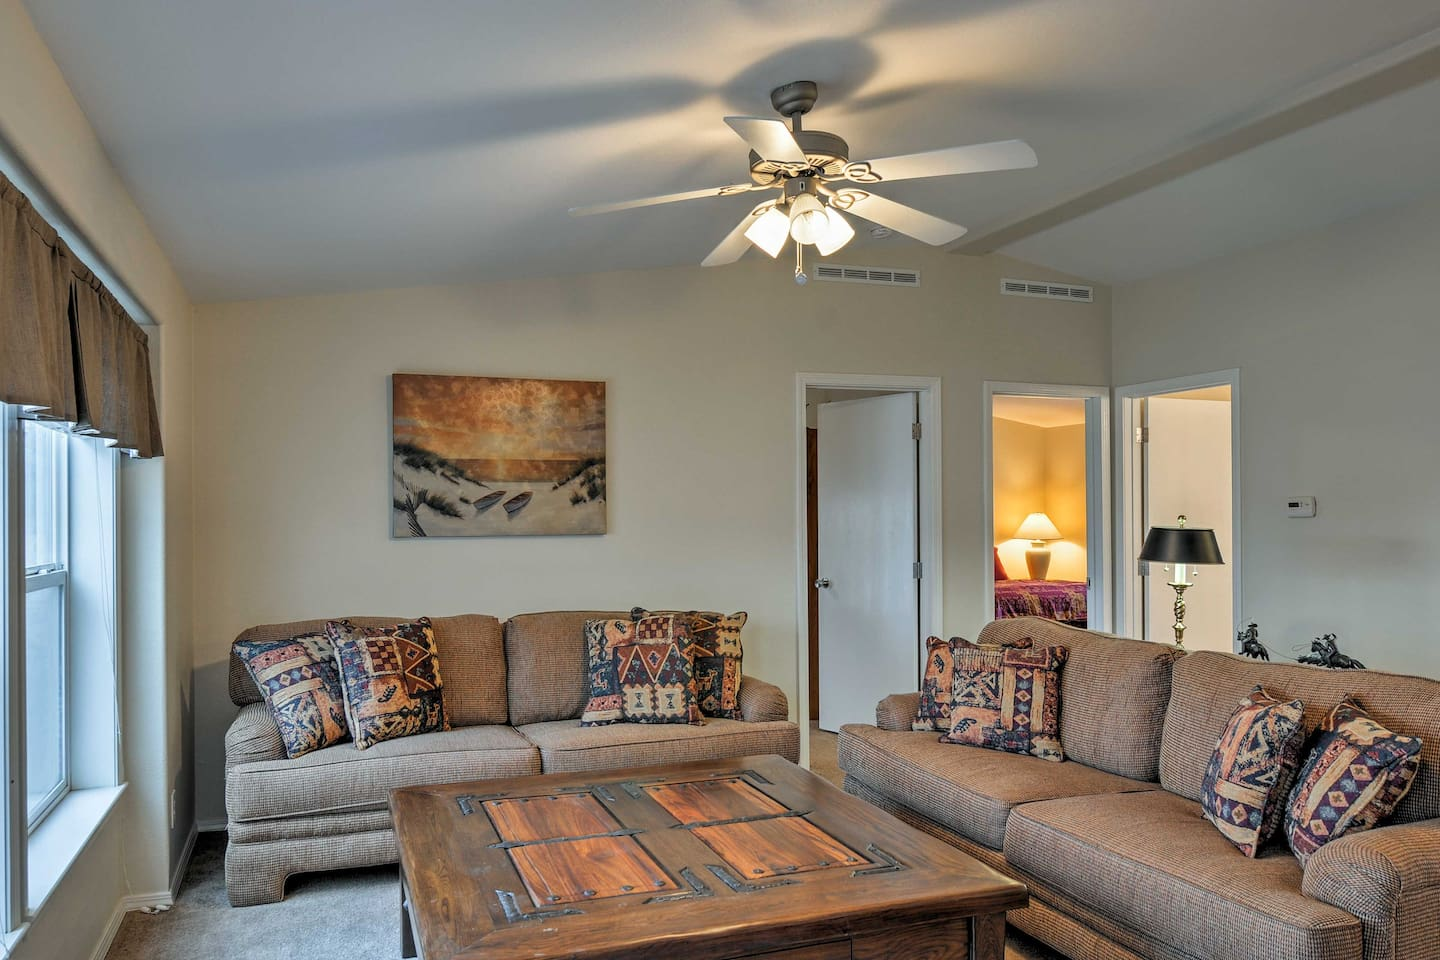 The 2,000-square-foot home includes 3 bedrooms & 2 bathrooms.